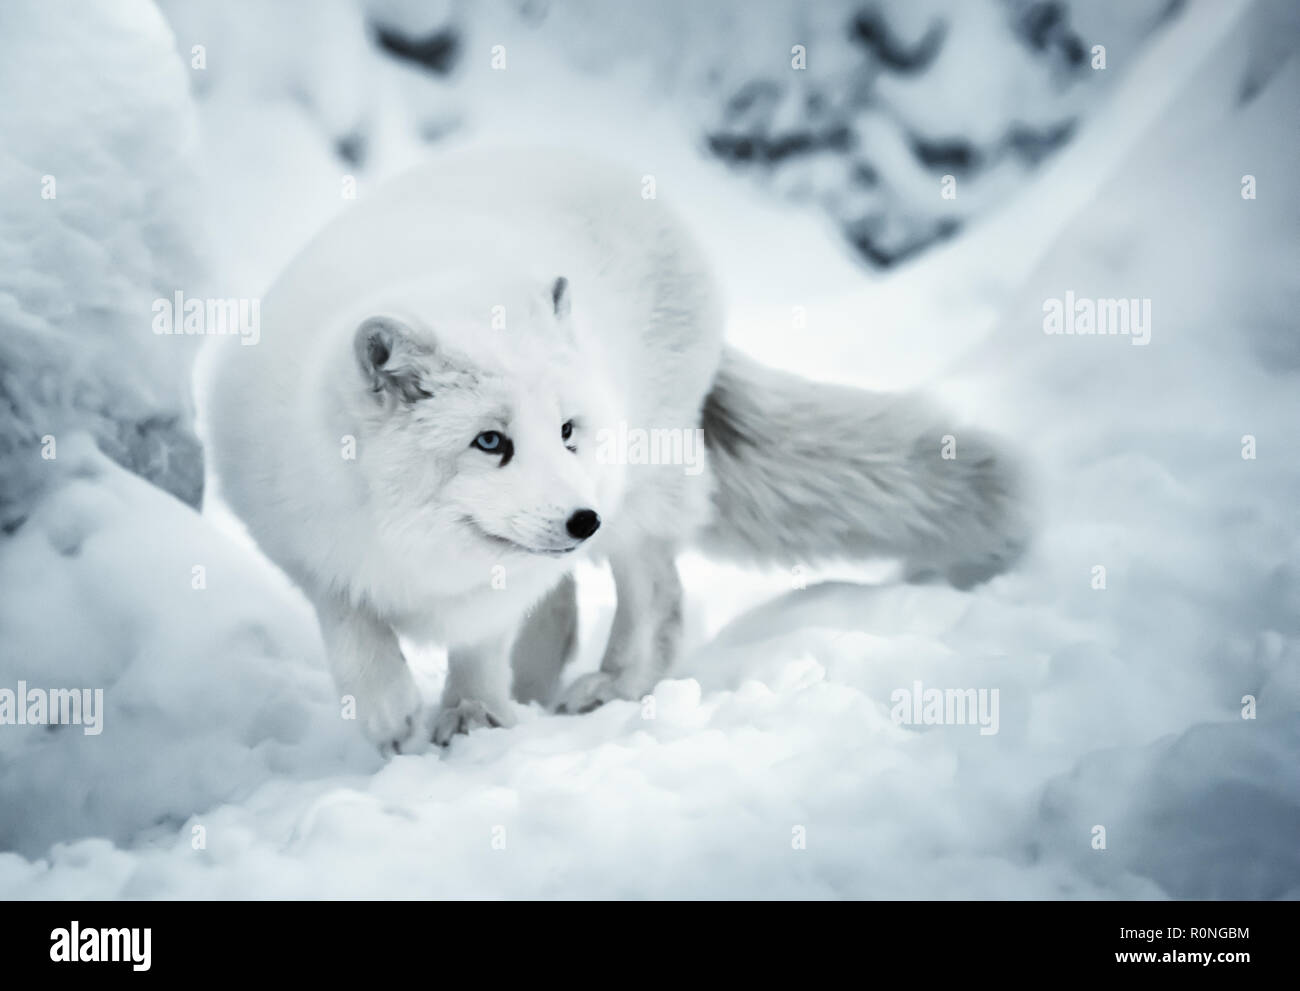 Winter landscape with one adult white polar fox or alopex lagopus in Finnish Lapland on real snow background. White animal is full of attention and li - Stock Image